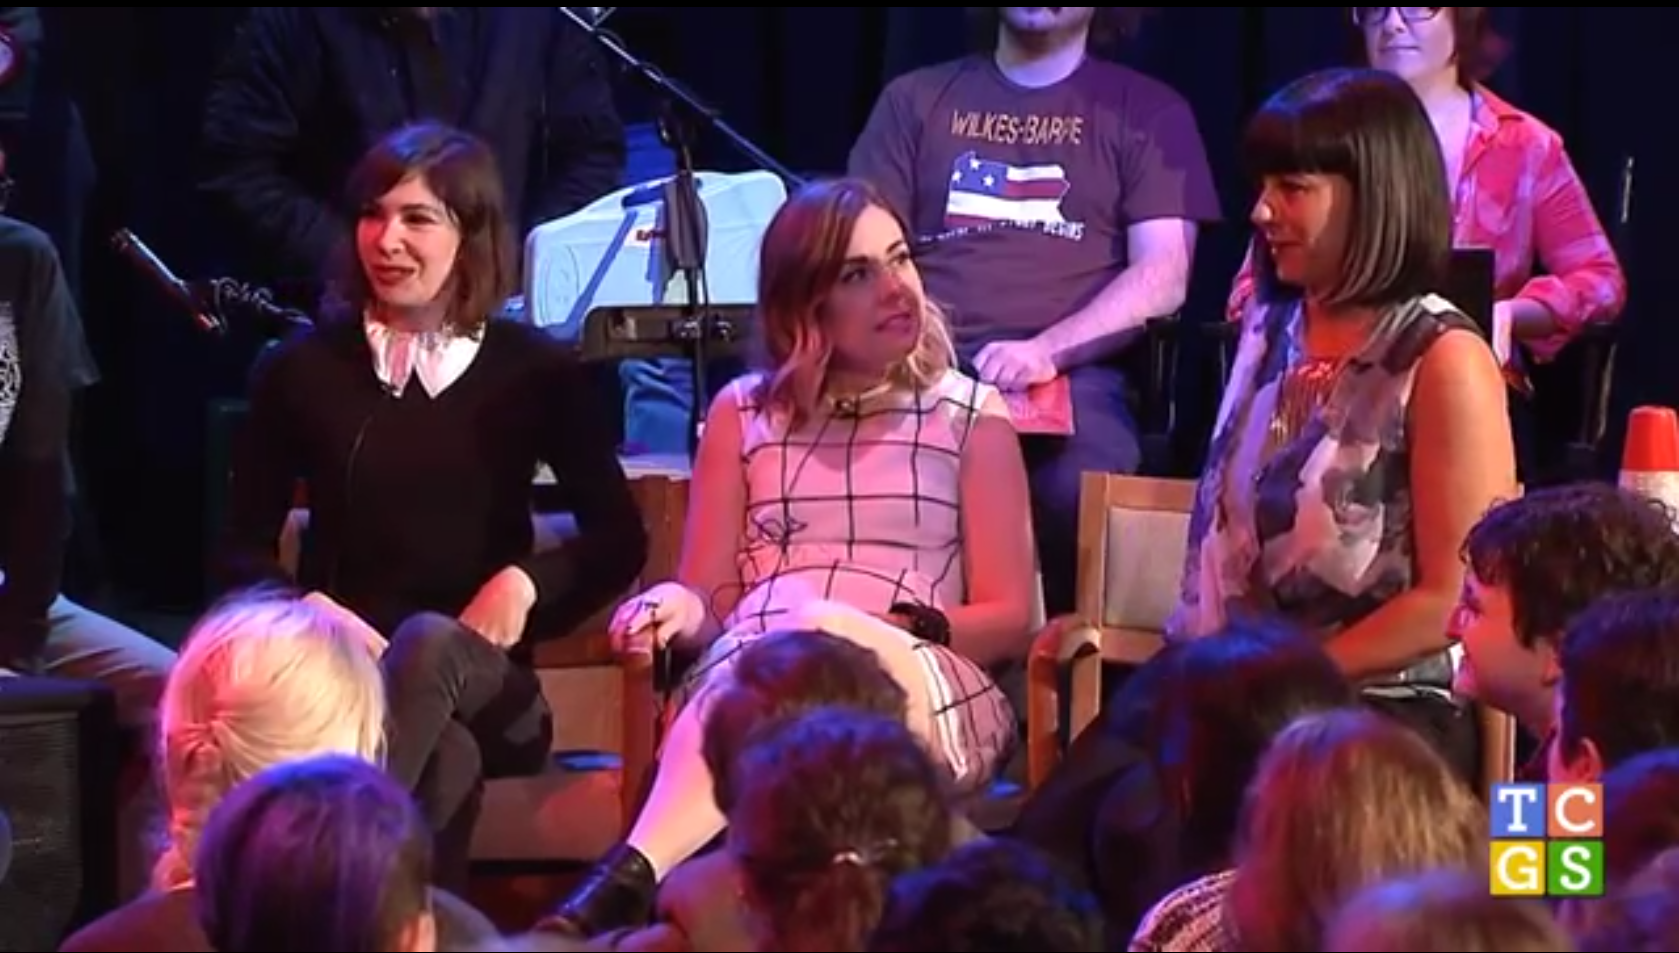 Watch Sleater-Kinney Play A Game Called &#8220;All Hands On The Bad One&#8221; On <em>The Chris Gethard Show</em>